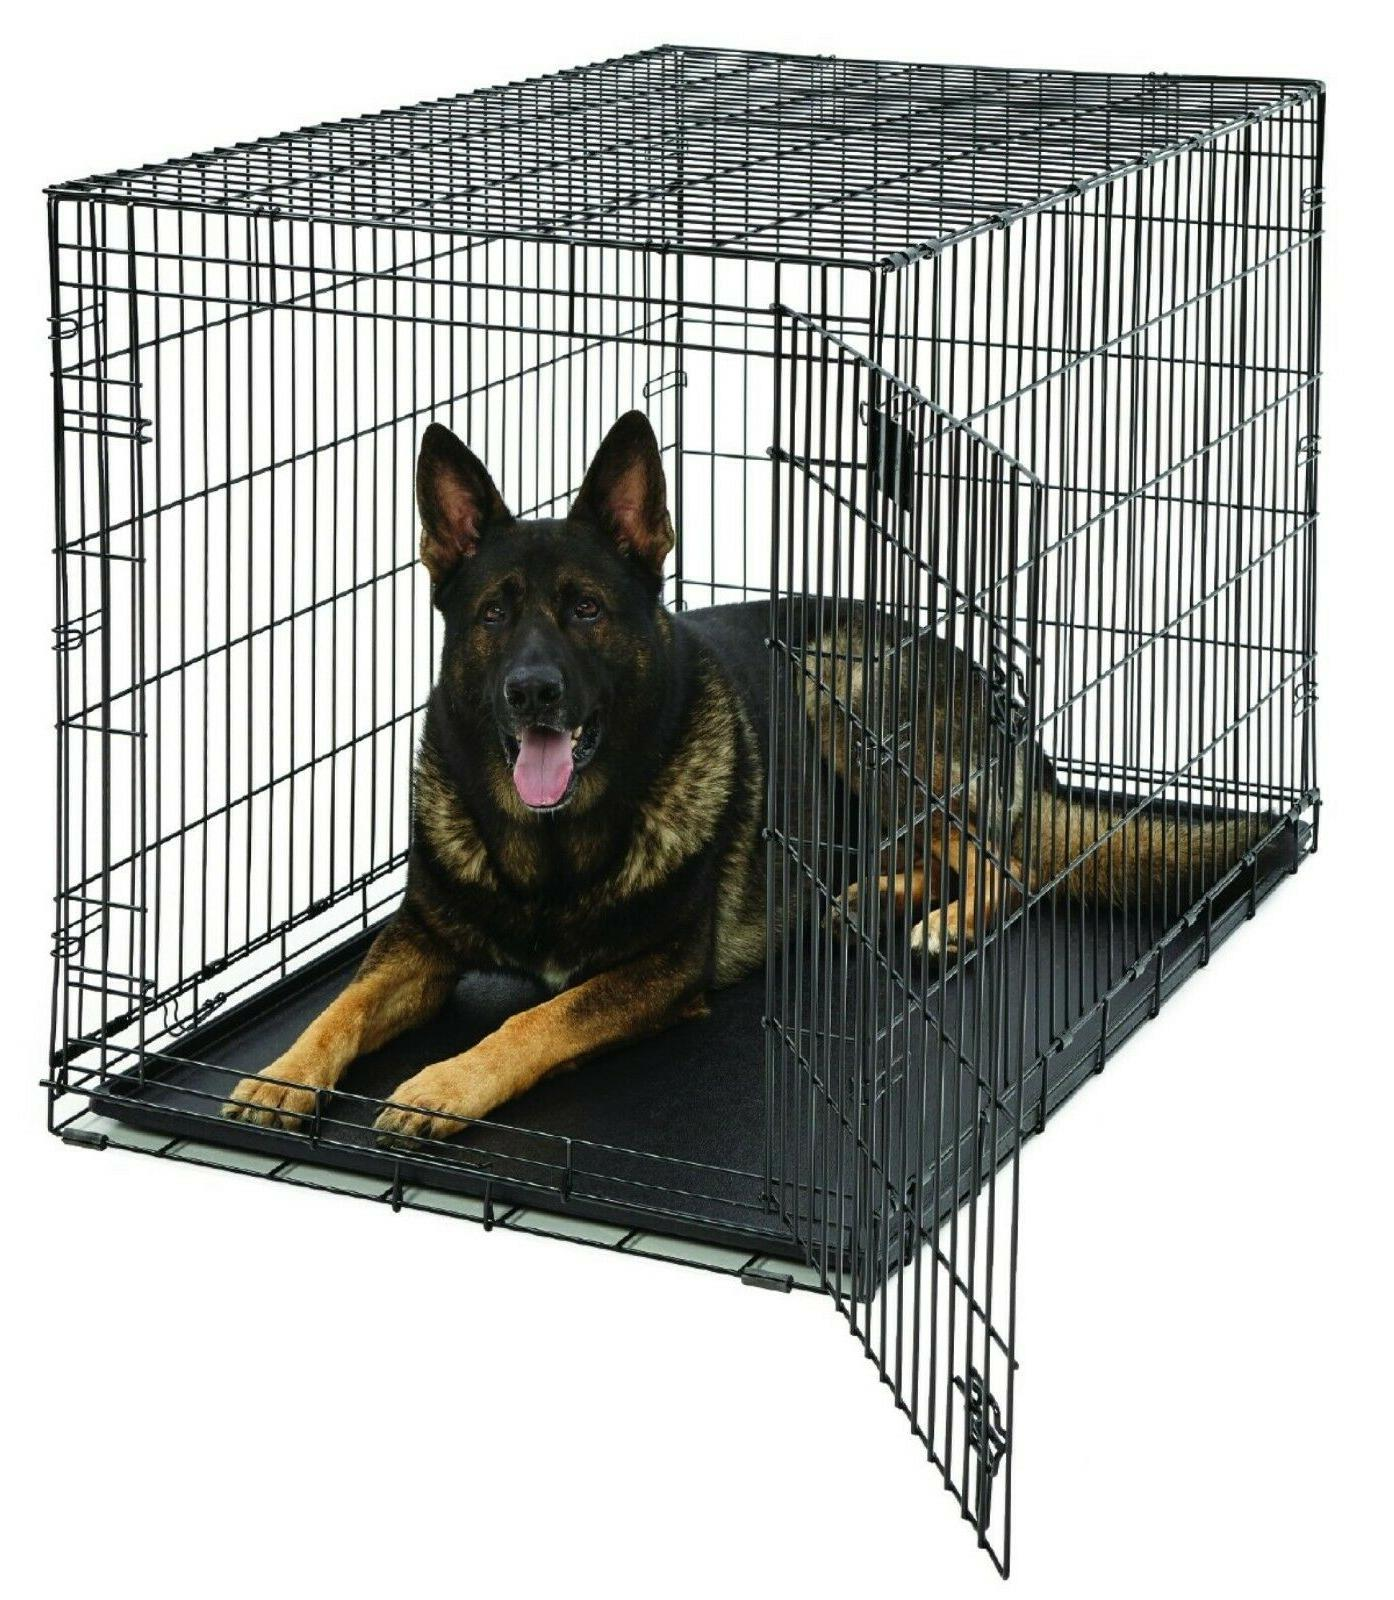 XL Dog Crate 48-Inch Pet Travel Cage Portable Folding Carry